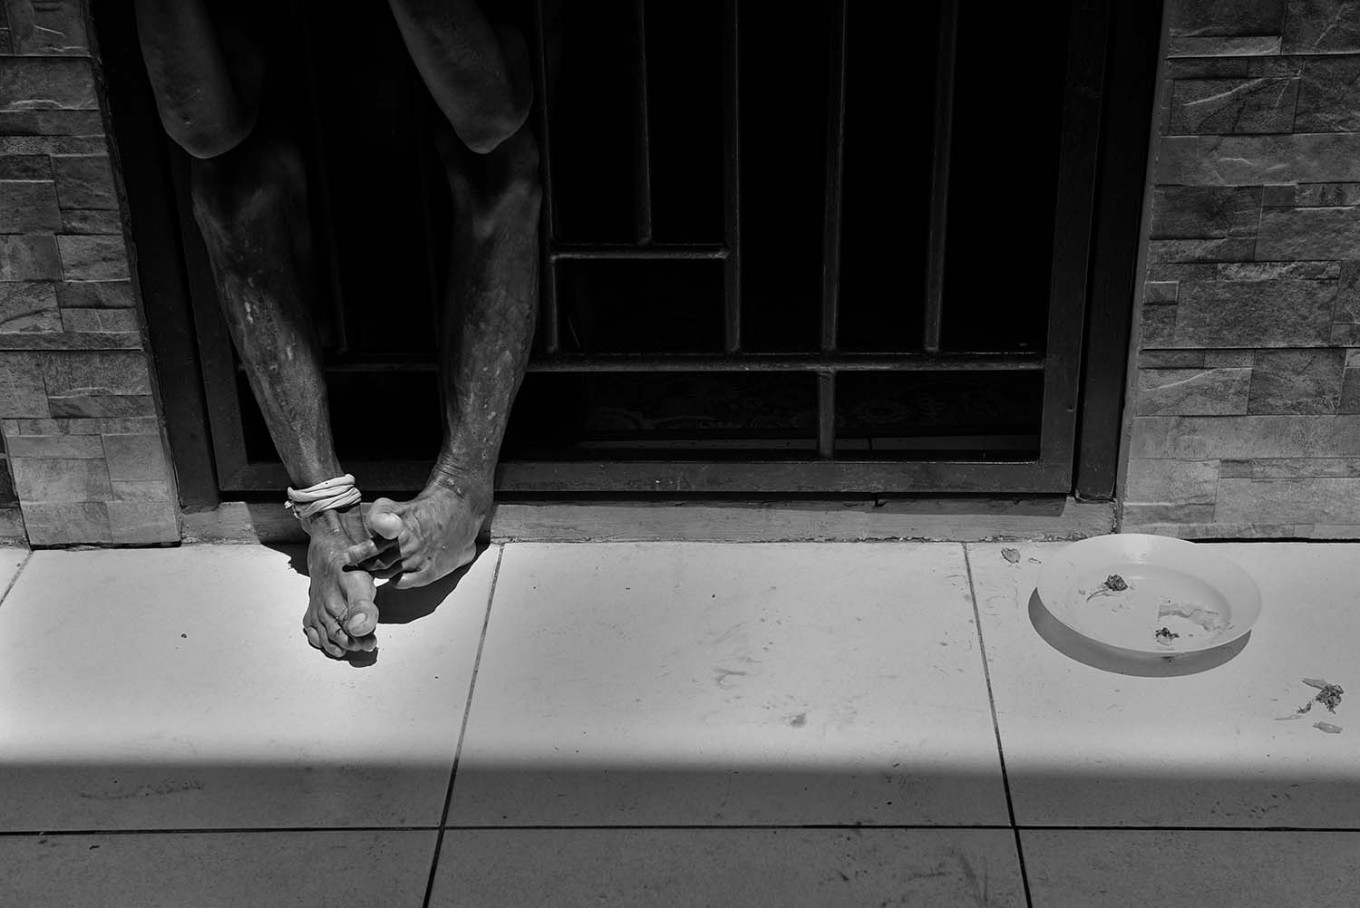 A mentally ill patient rests his feet through the bars of his isolation room in the Galuh Foundation rehabilitation center in Bekasi, West Java. Antara/Hafidz Mubarak